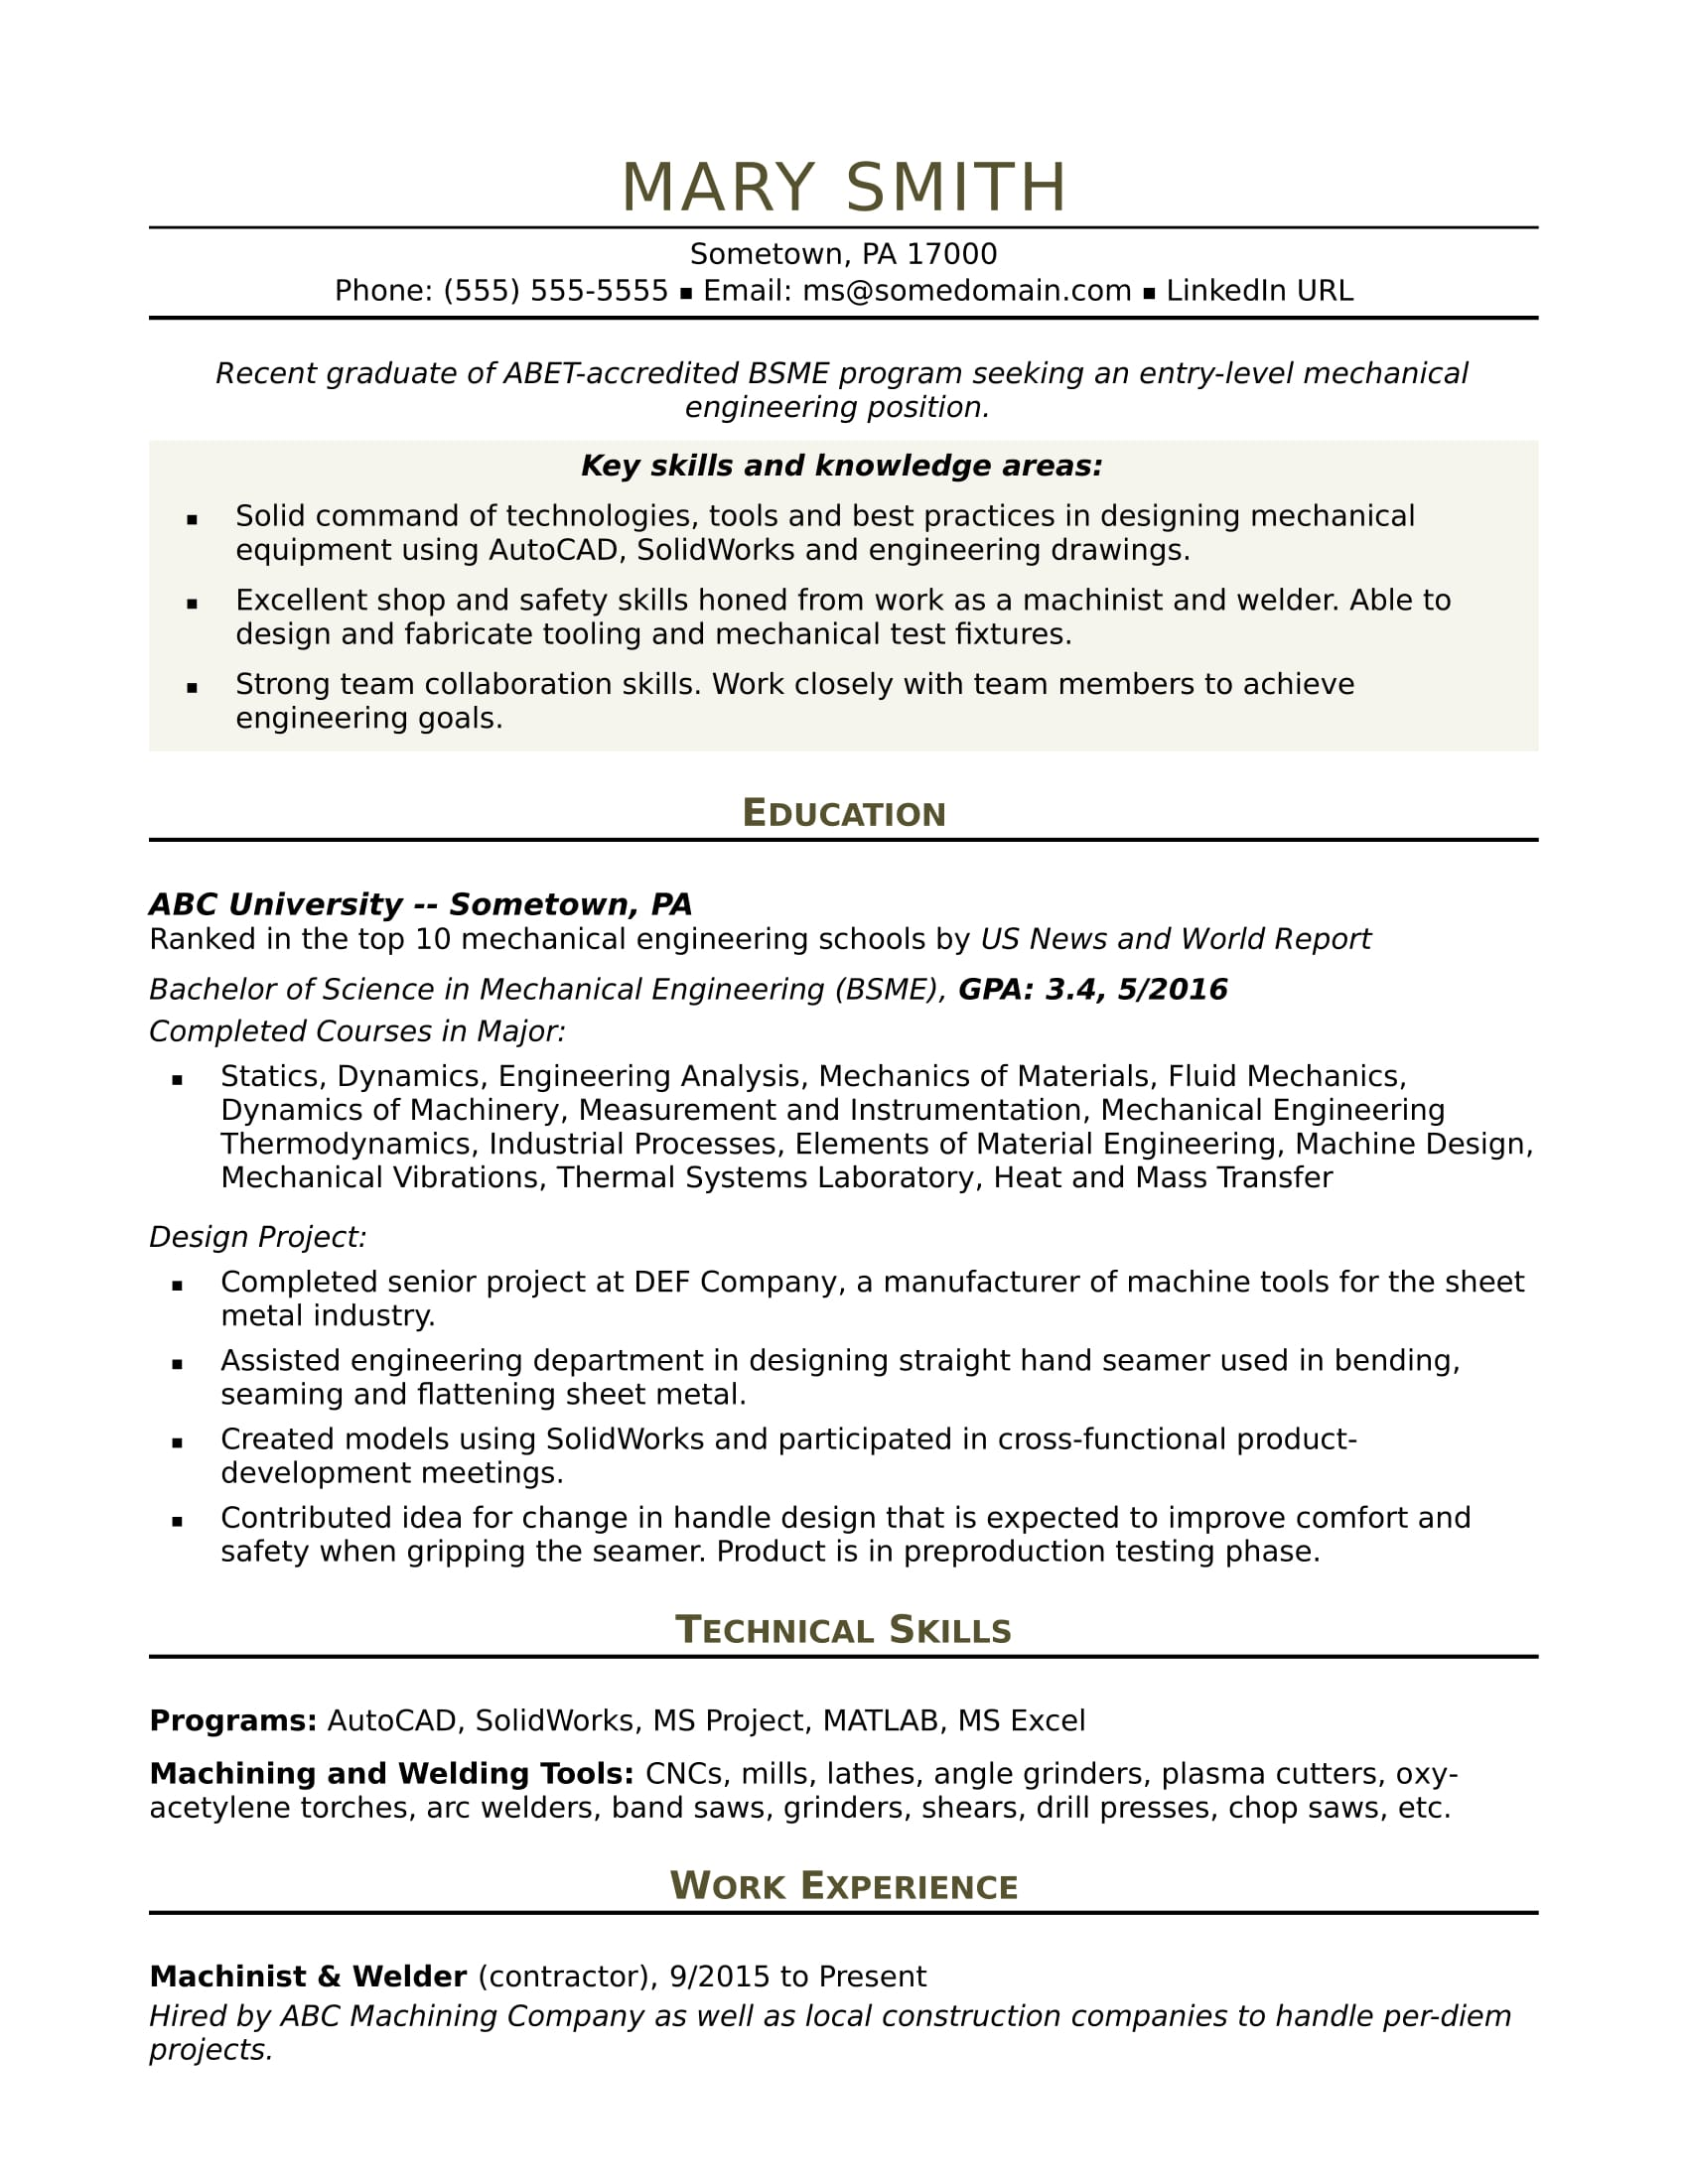 Sample Resume For An Entry-Level Mechanical Engineer ...